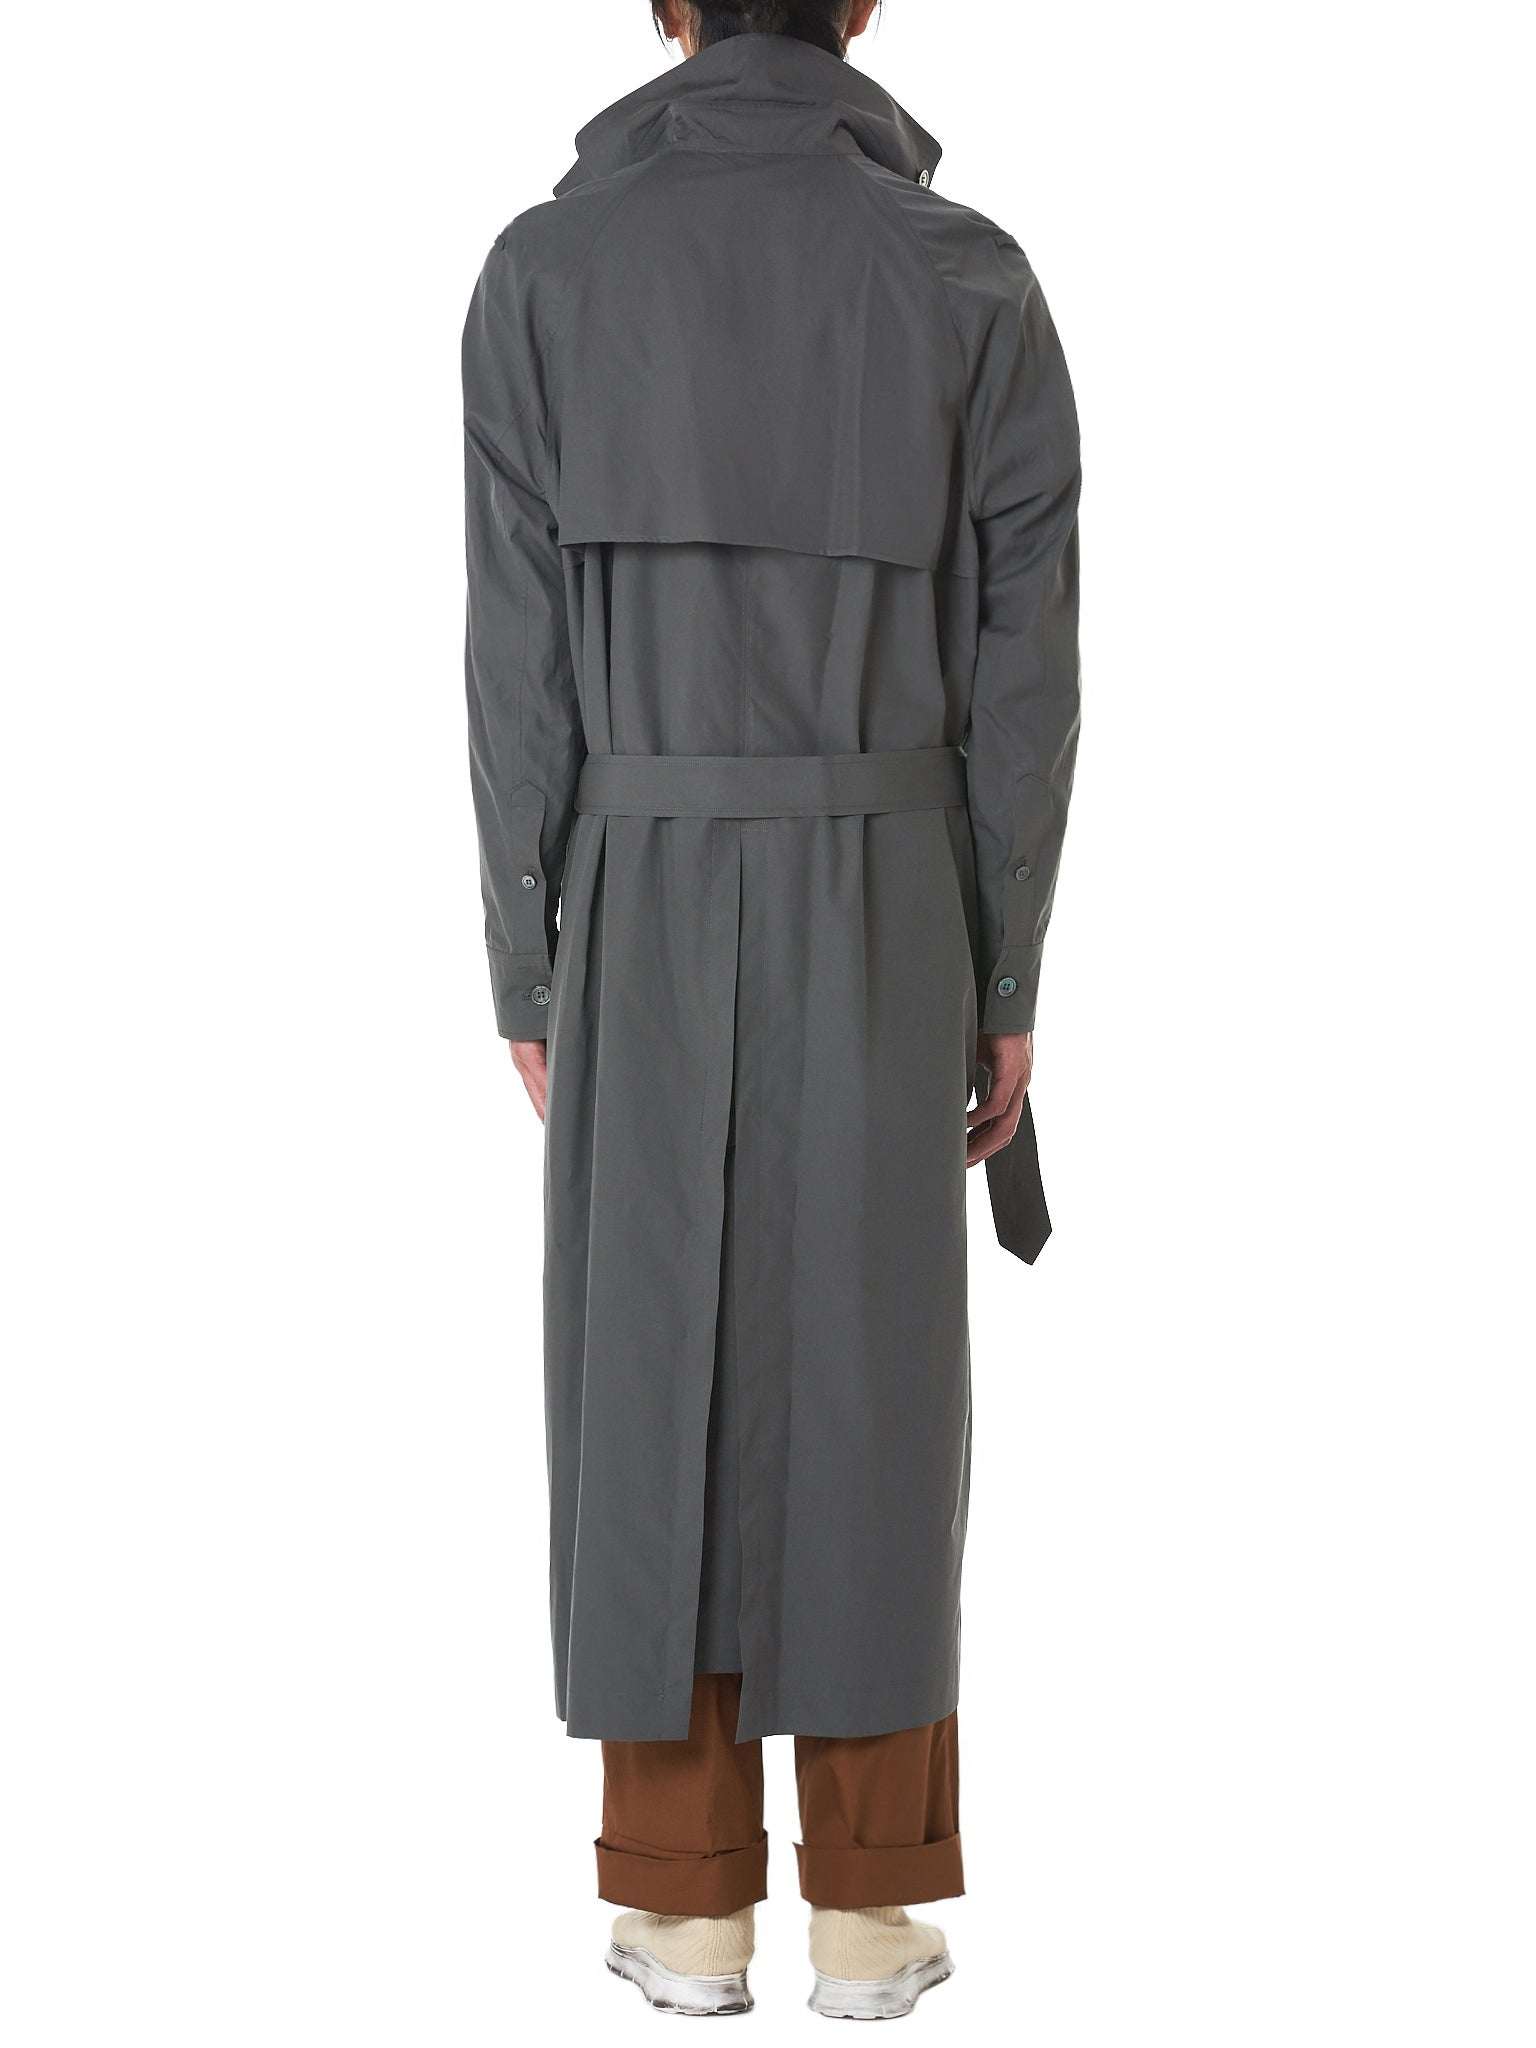 Federico Curradi Trench Coat - Hlorenzo Back